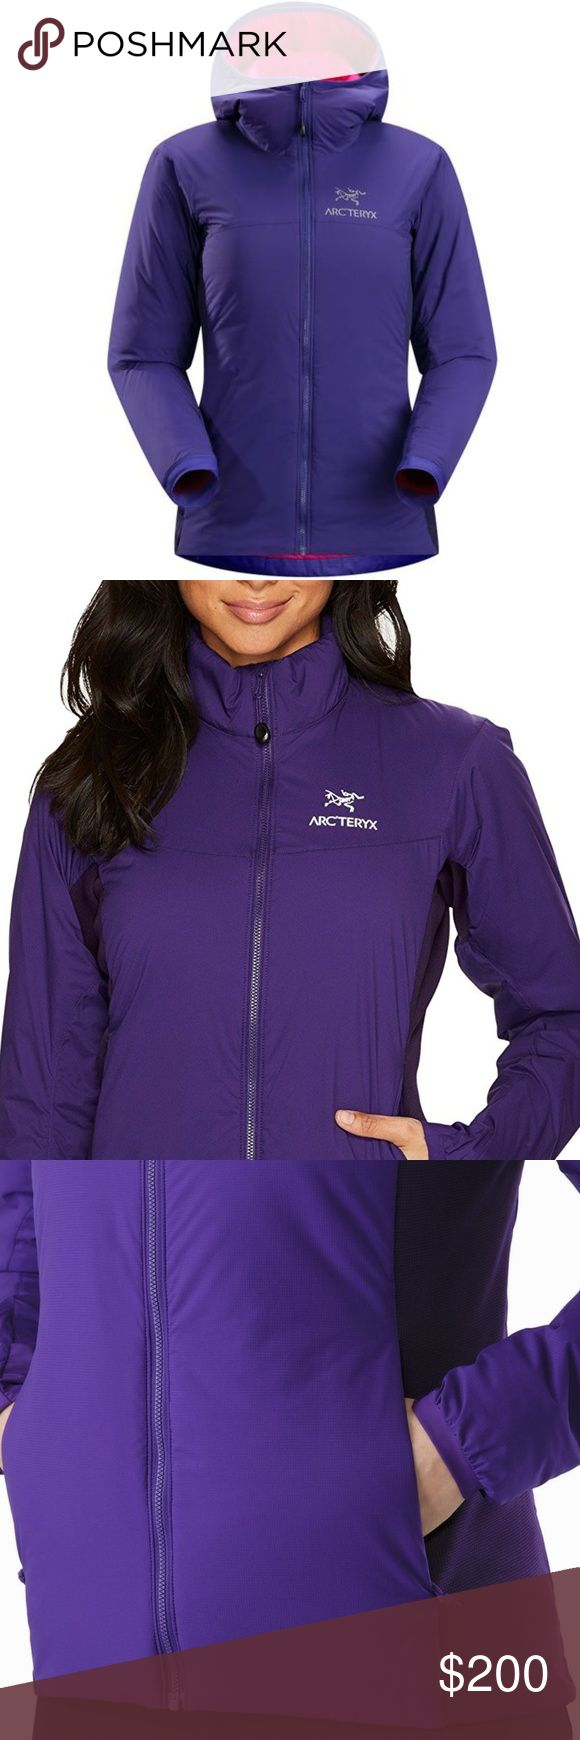 Arc'teryx Atom Hoody (purple) This Arc'teryx hoody is lightweight, breathable and insulated. Ideal as a stand-alone piece in fair weather, or as a layering piece in cold conditions.  Breathable, stretch side panels for enhanced comfort and mobility DWR (Durable Water Repellent) finish repels moisture. Retains warmth when damp.  Athletic fit, hip length.  Insulated, helmet compatible hood. Stretch knit cuffs.   Measurements Shoulder-top-hem: 23 inches (front) + 25 inches (back) Chest: 19…